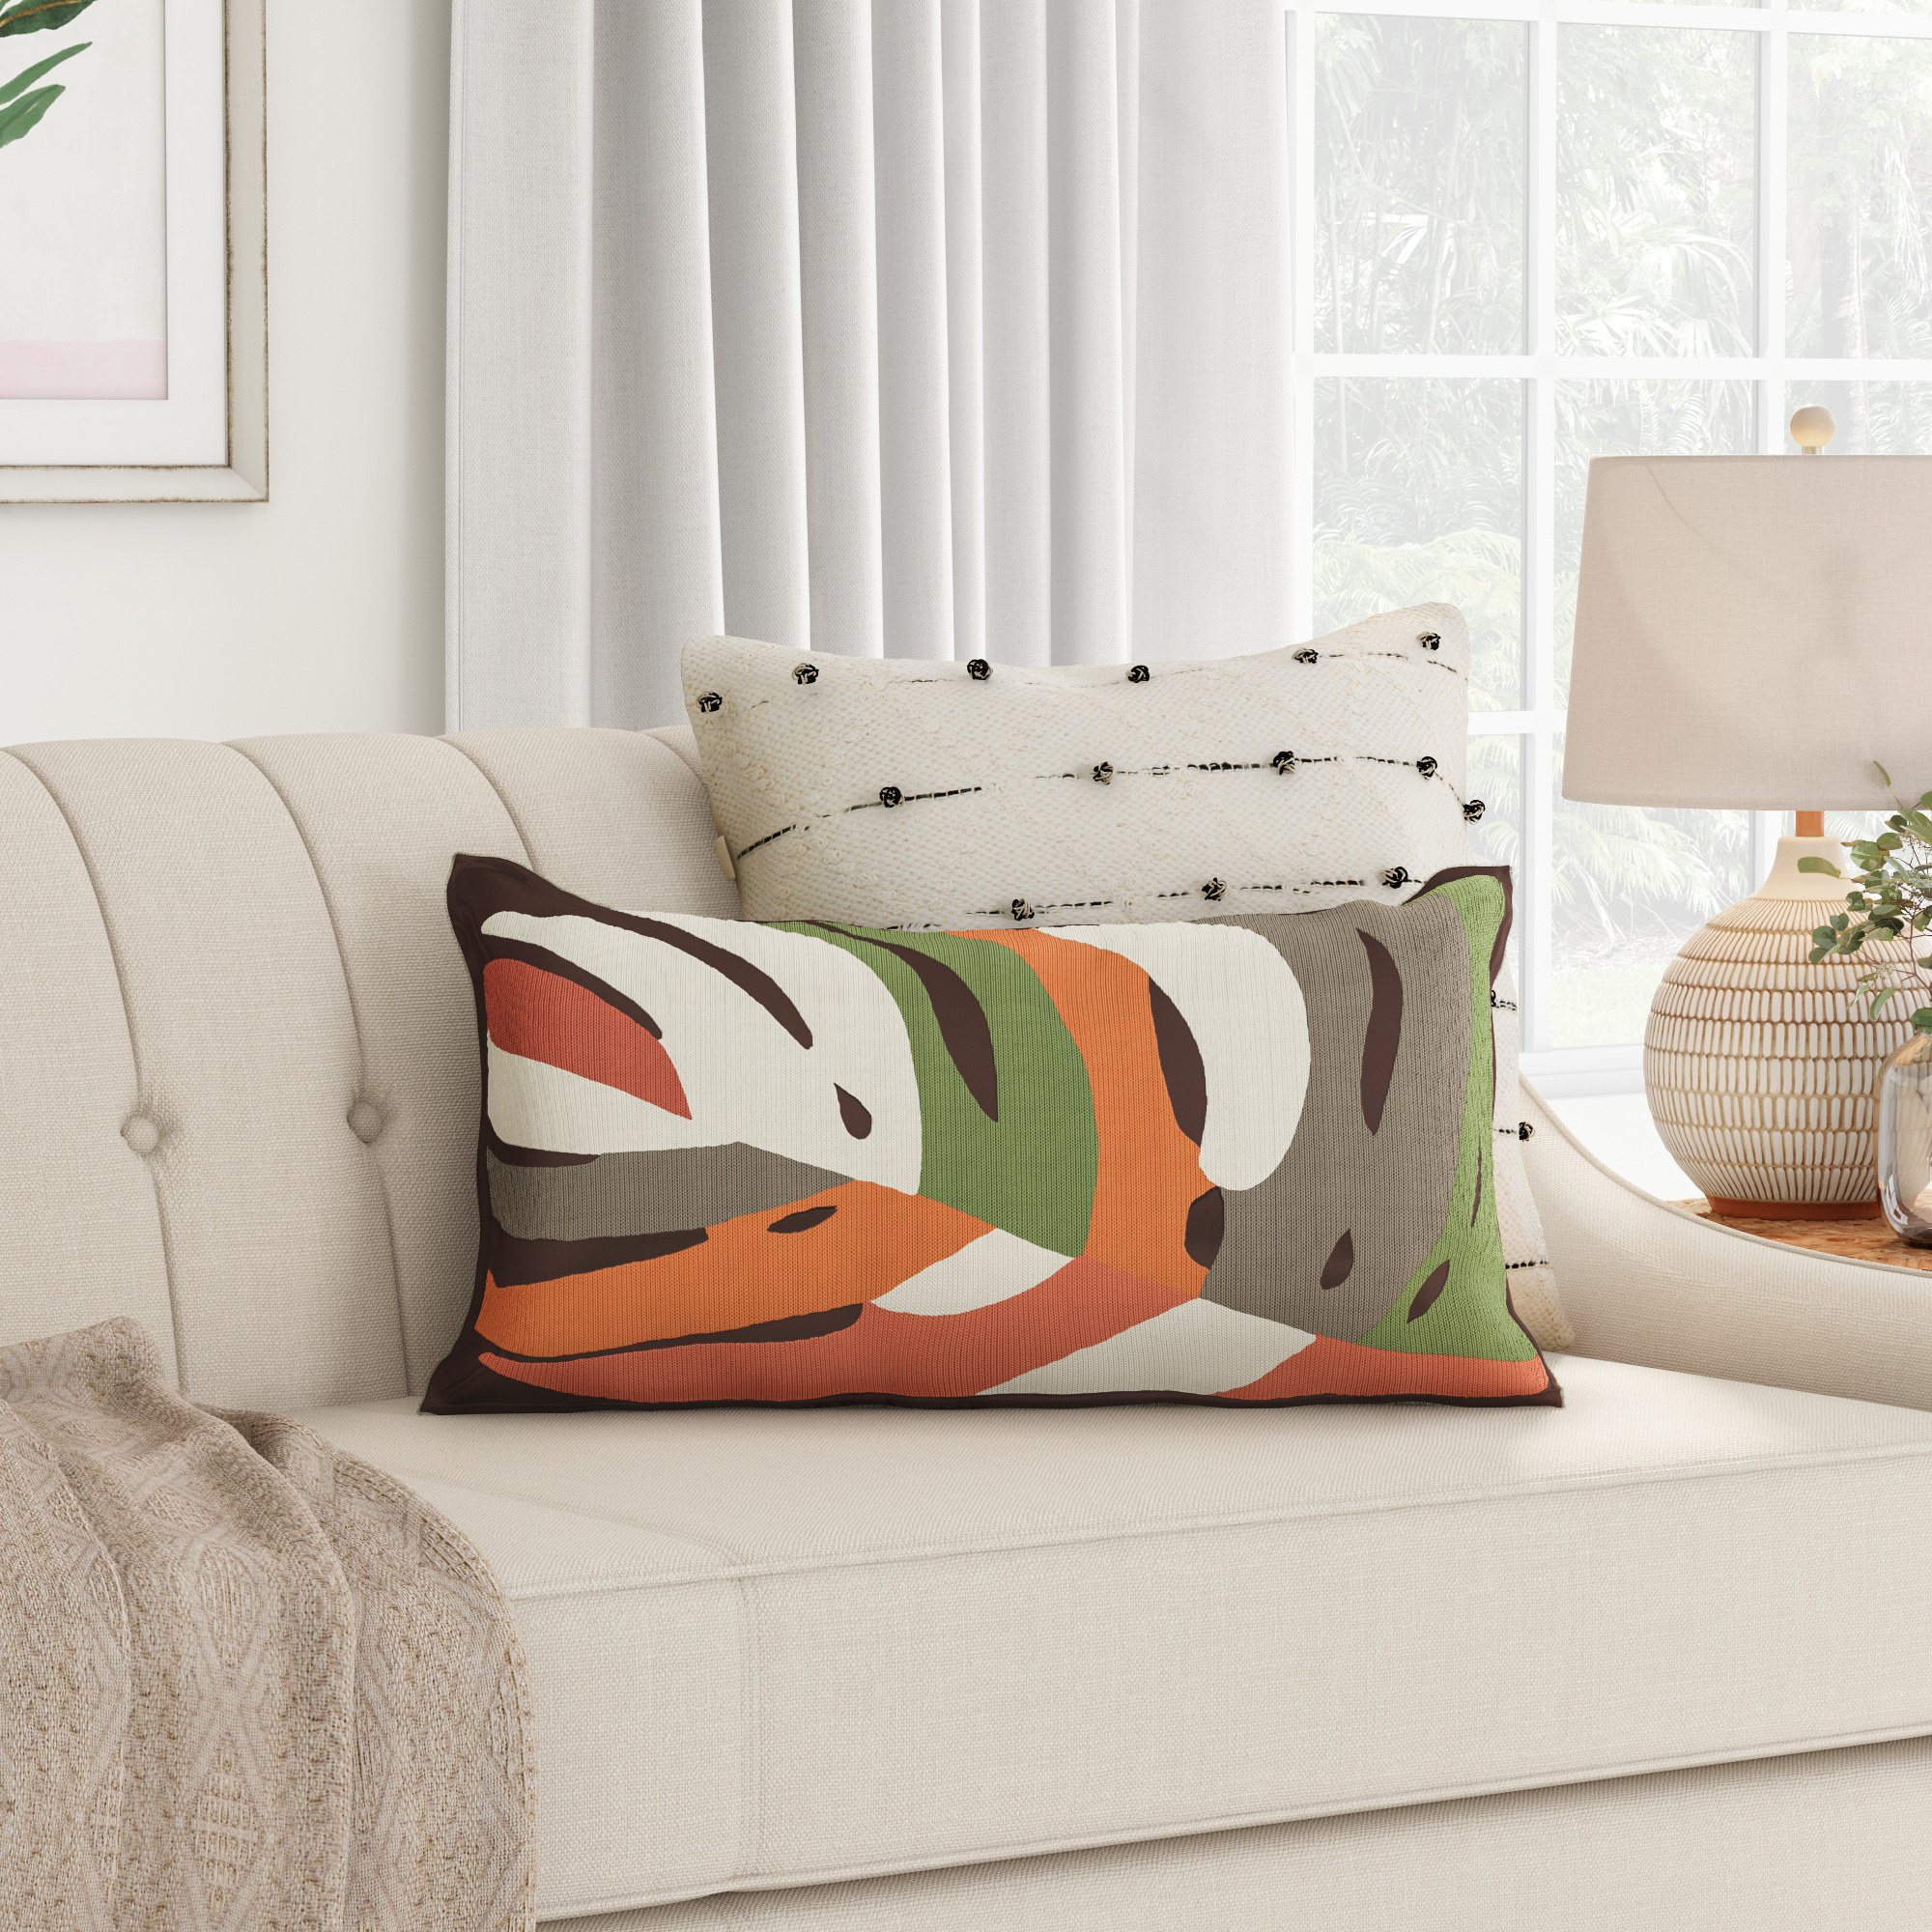 The multicolored leaf-patterned pillow on a couch